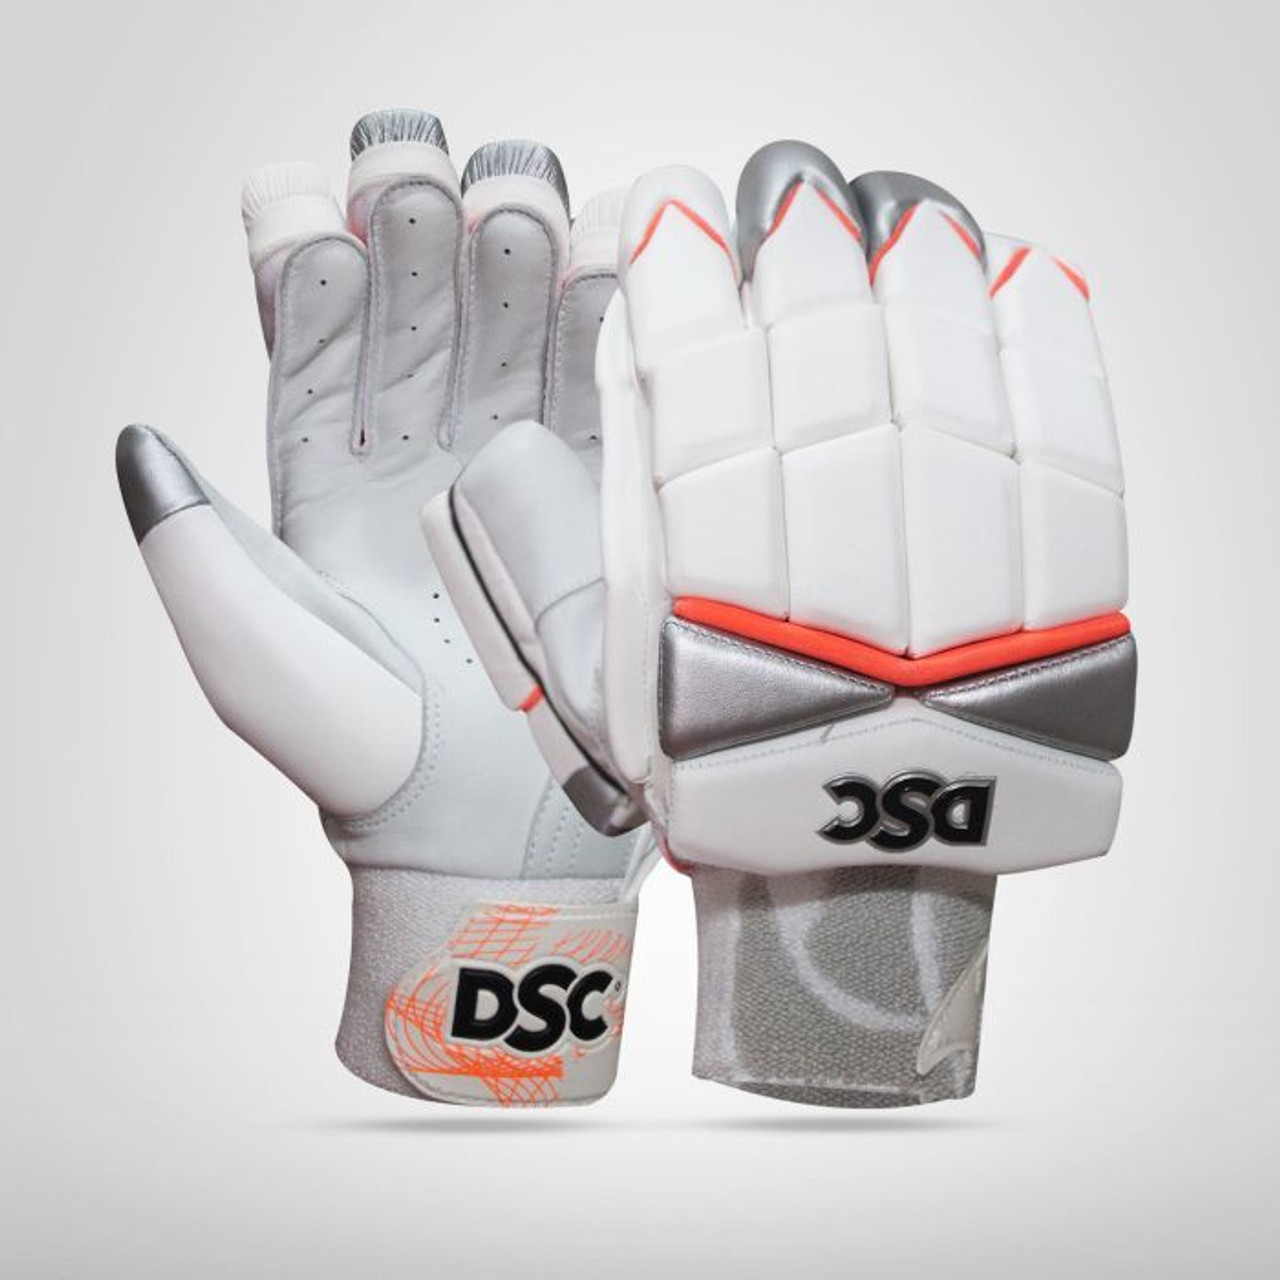 DSC Batting Gloves